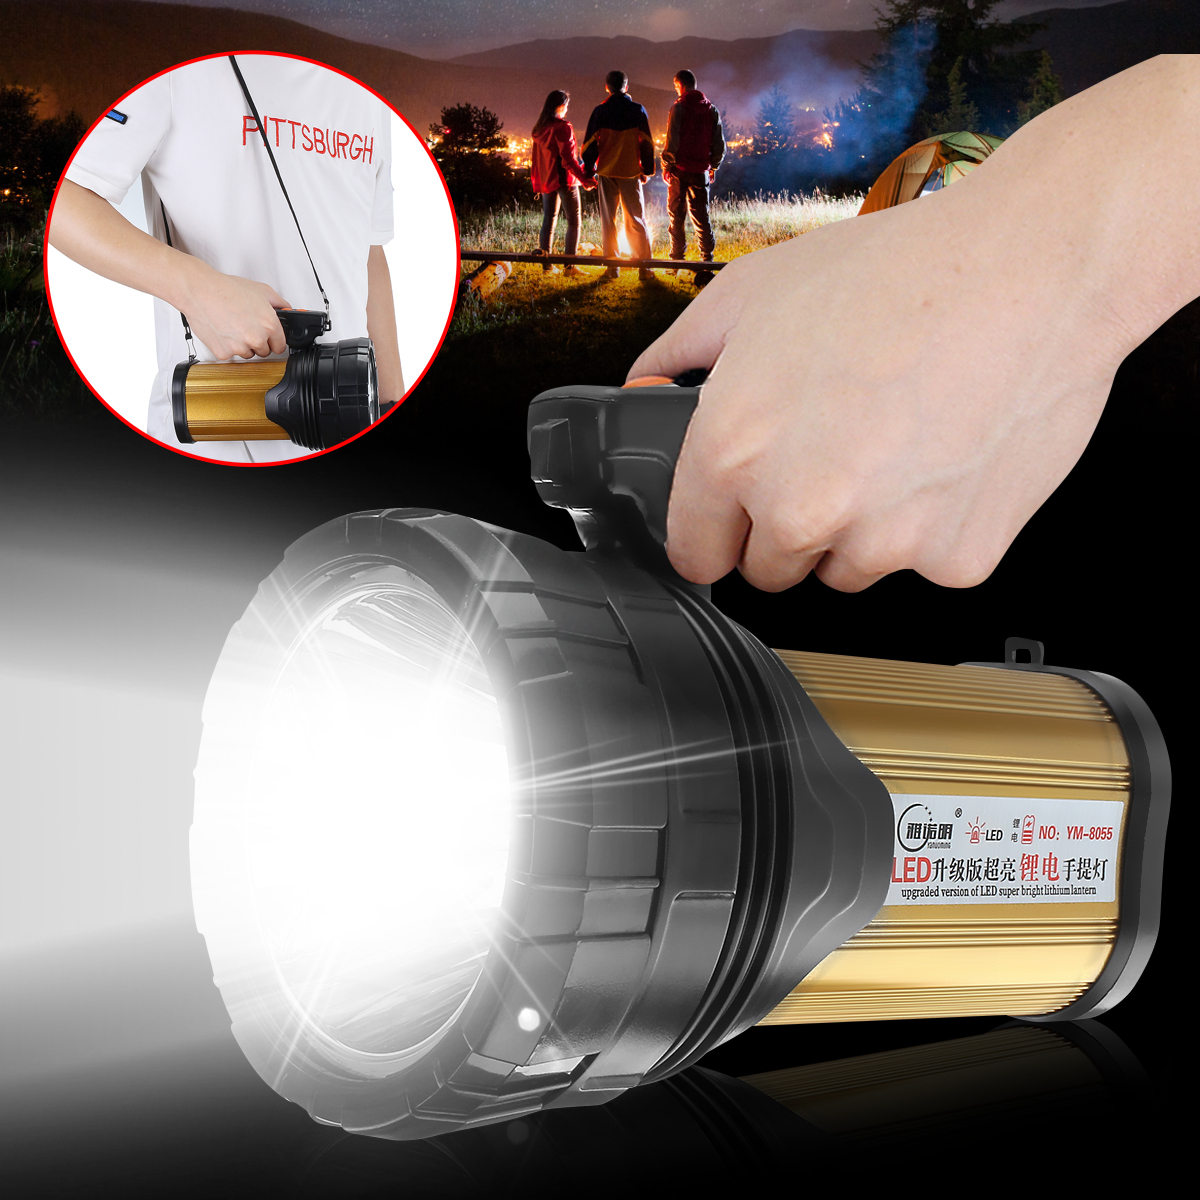 120W LED Portable Spotlight Lantern Searchlight Rechargeable Handheld High Power Portable Light for Outdoor Camping